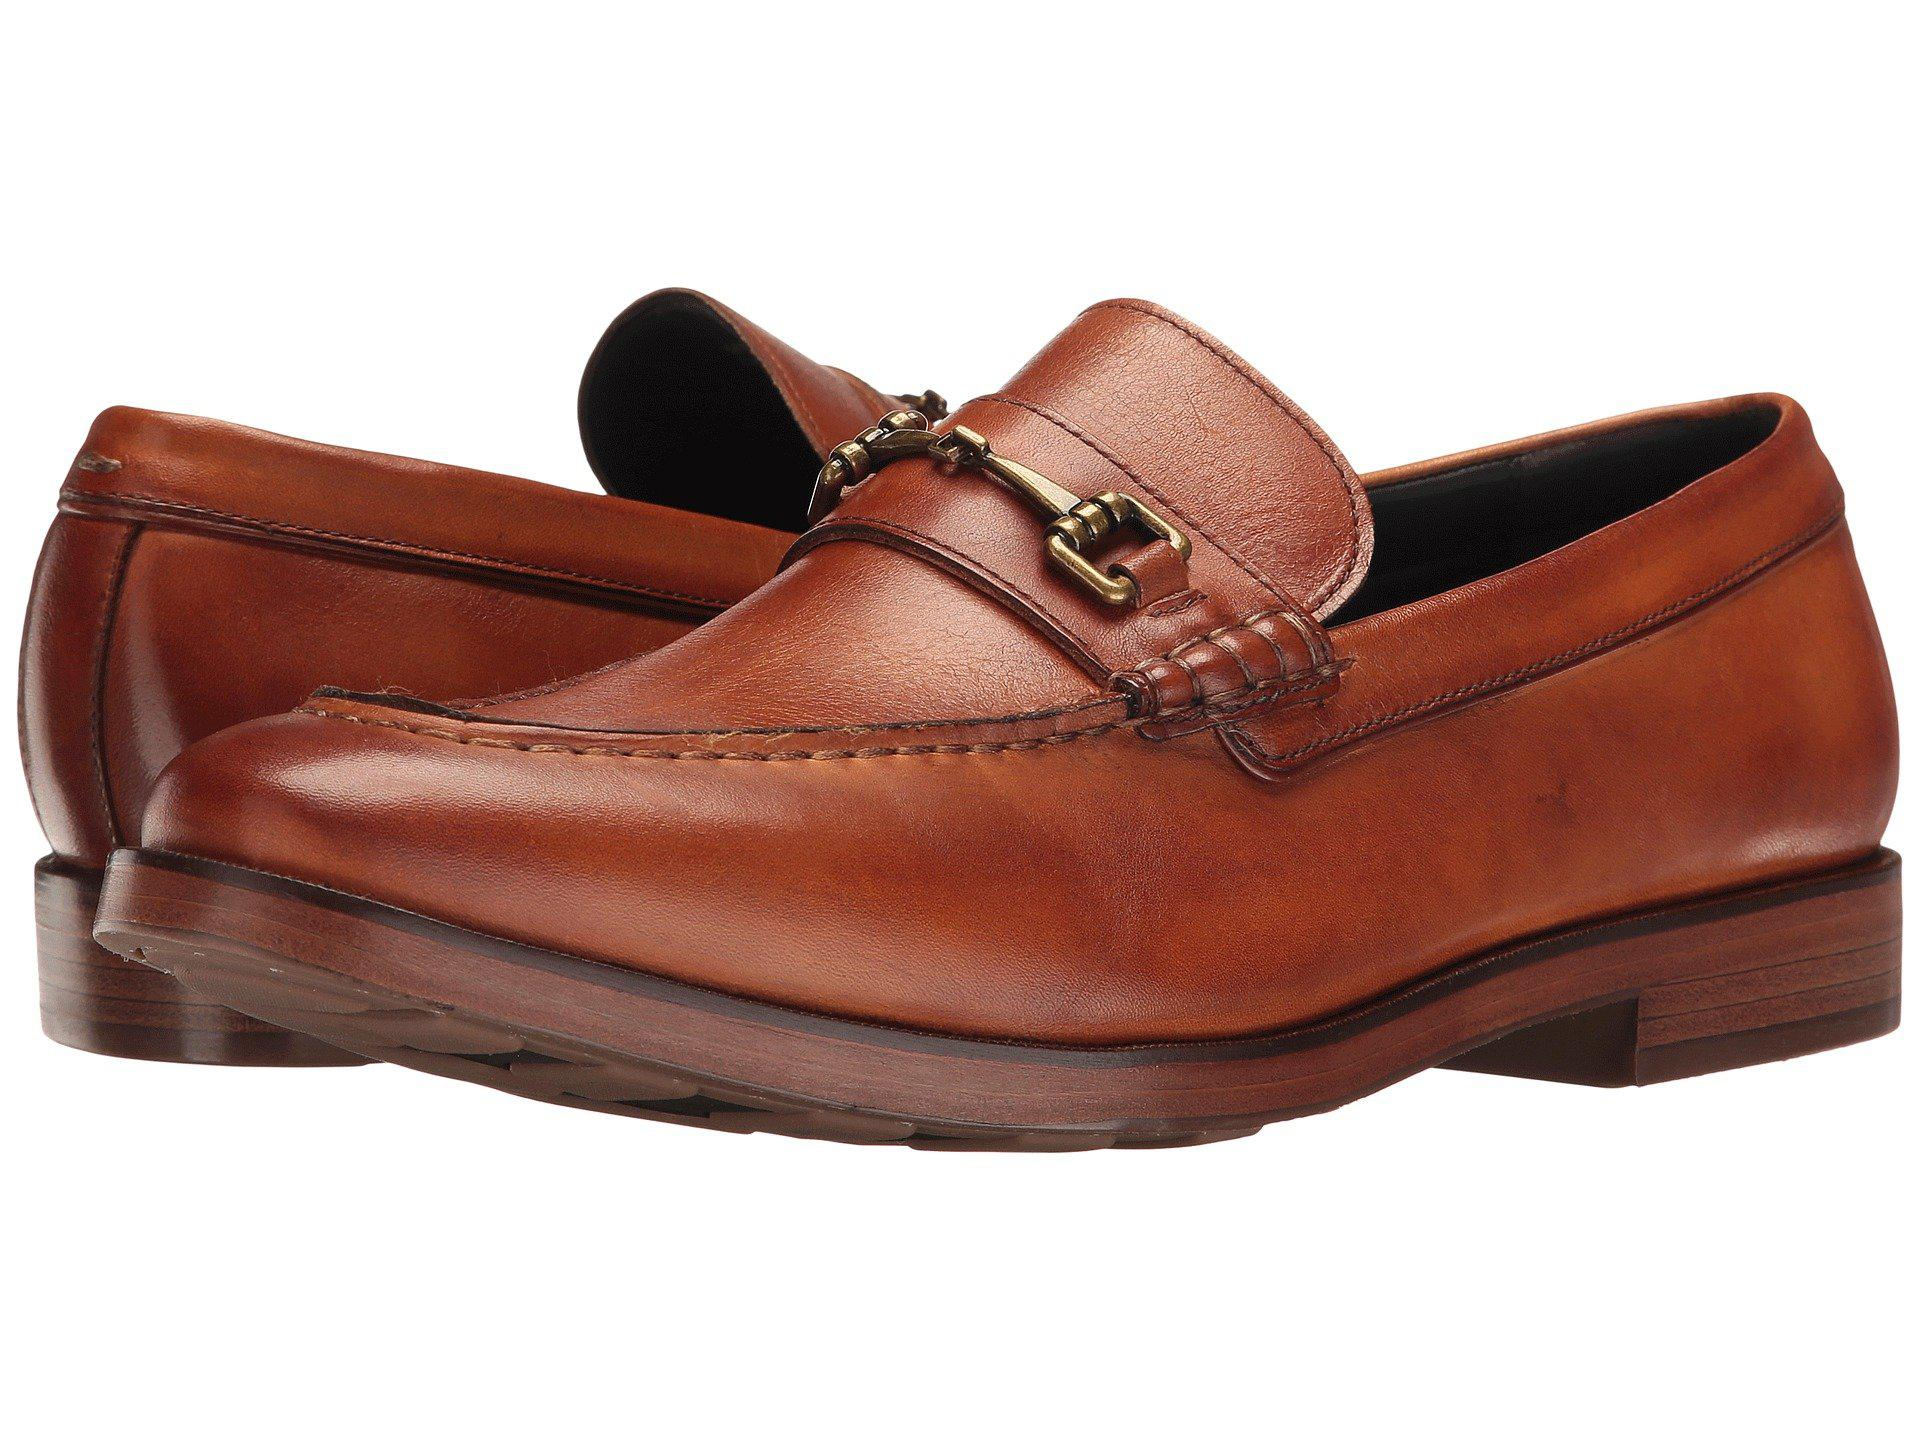 f41a329b424 Lyst - Cole Haan Hamilton Grand Bit Loafer in Brown for Men - Save ...